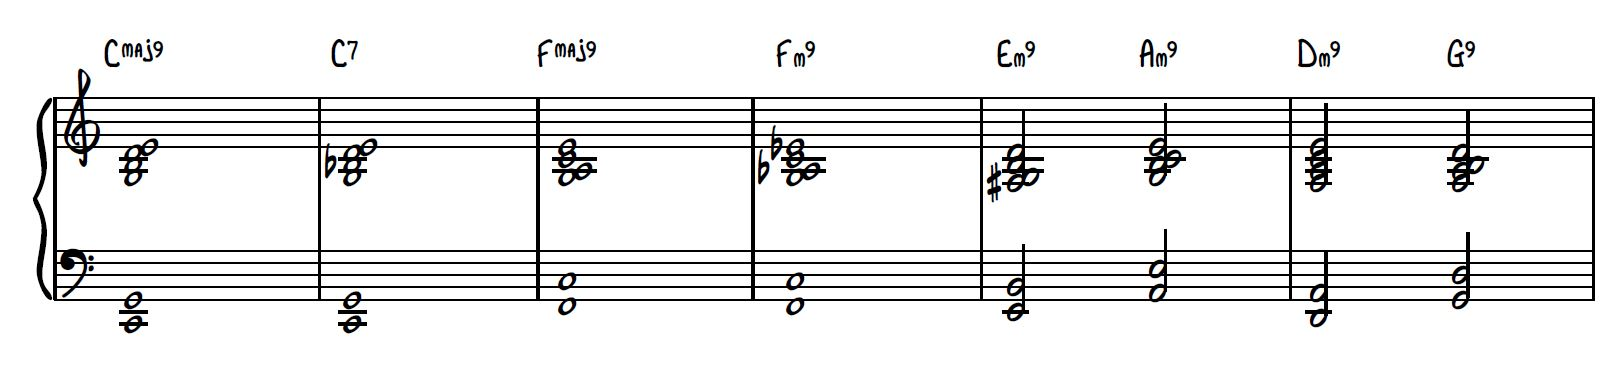 """Misty"" chords with 9ths"